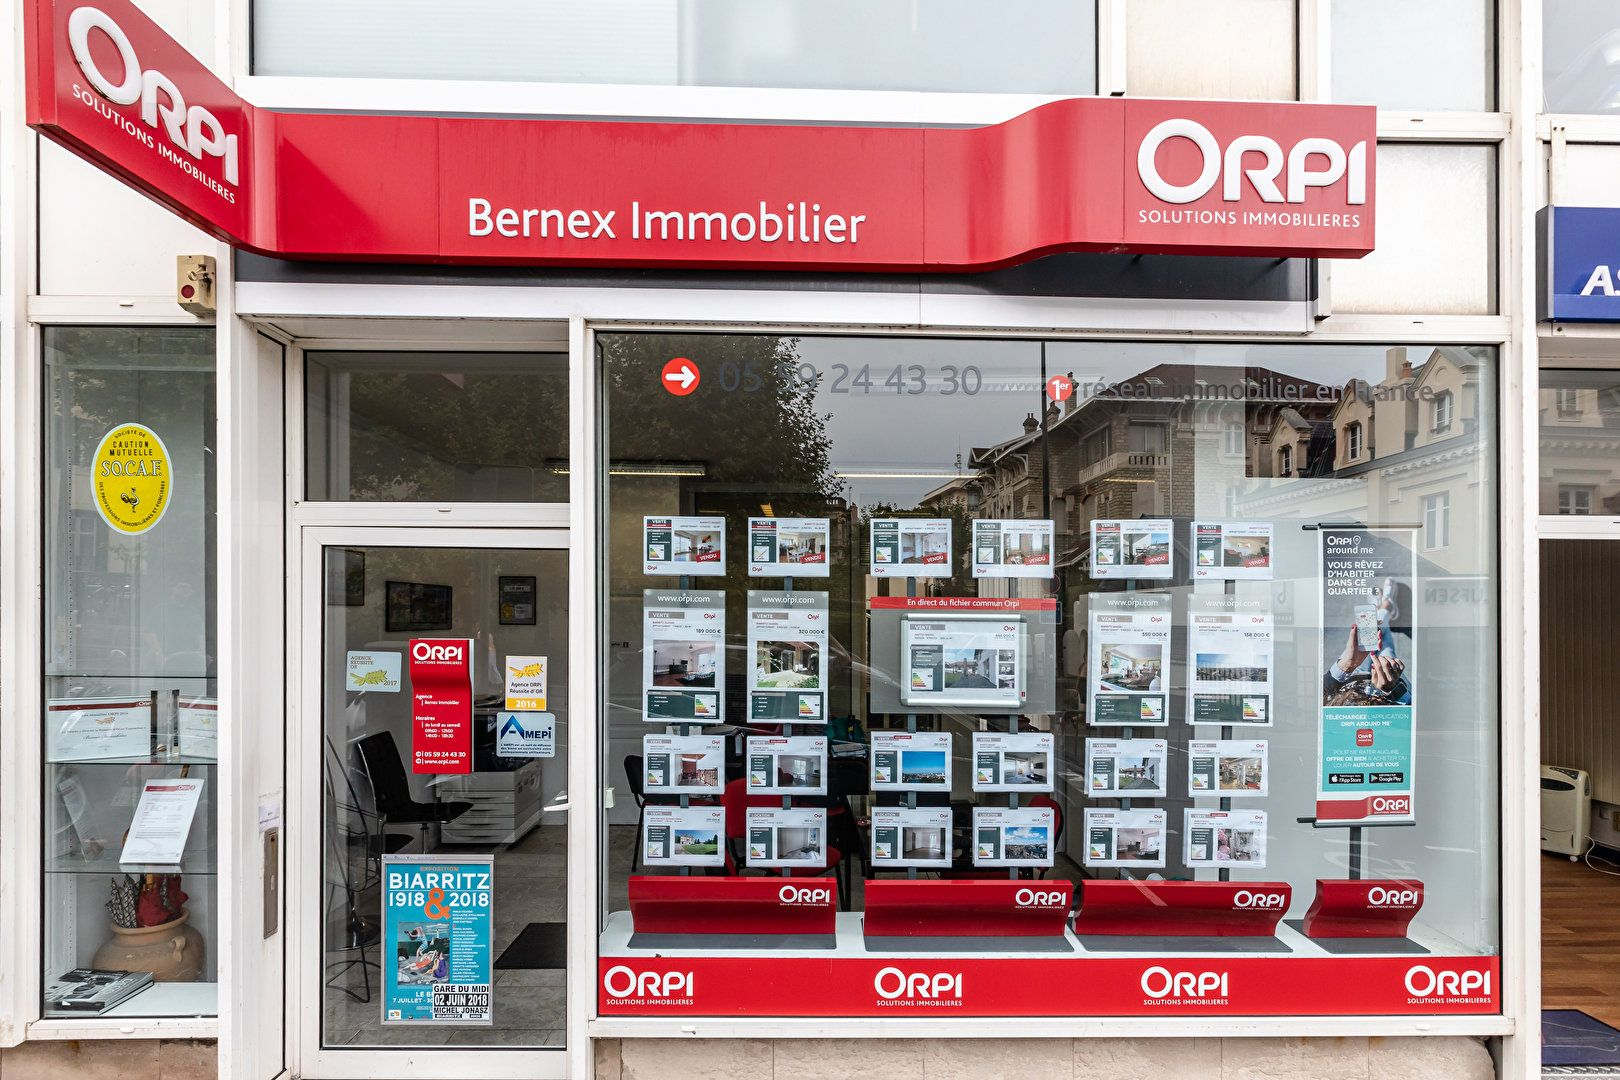 Agence immobili re biarritz bernex immobilier biarritz for Agence immobiliere 59